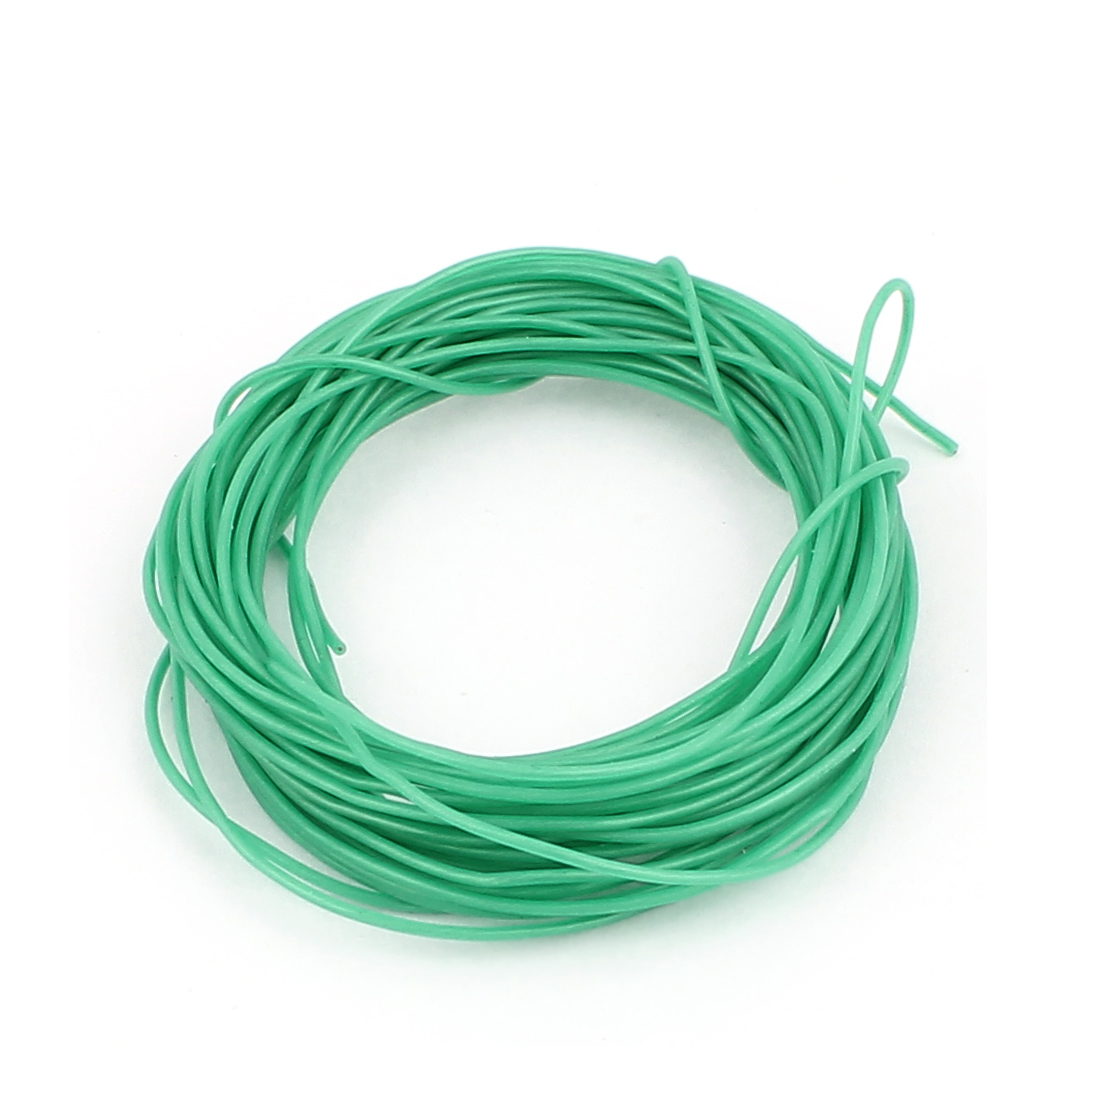 5M 30AWG Electric Copper Core Flexible Silicone Wire Cable Green